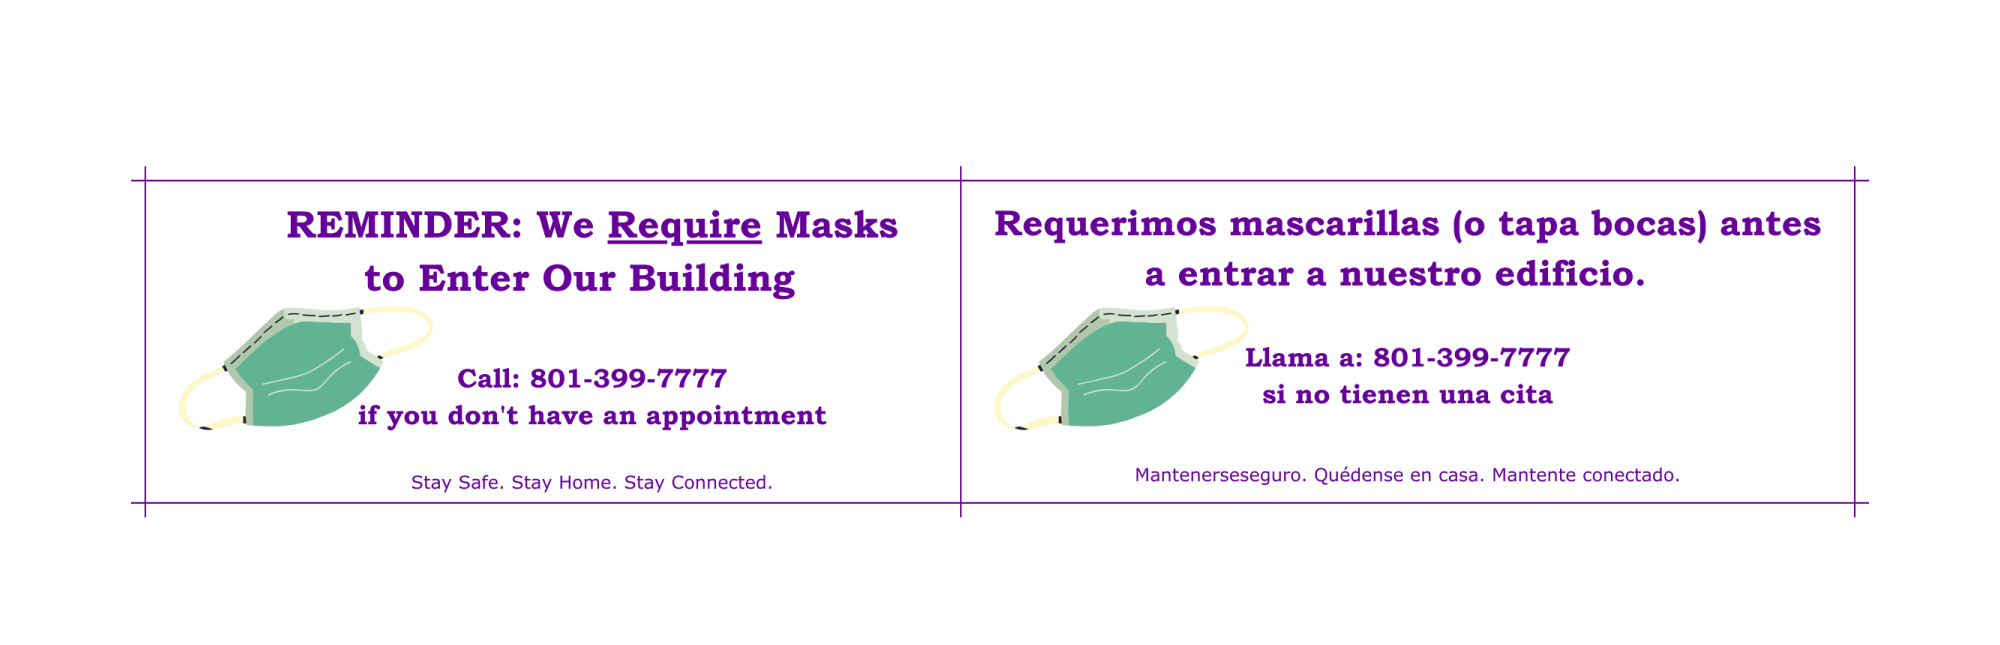 Reminder: We Require Masks to Enter Our Building | Requerimos mascarillas (o tapa bocas) antes a entrar a nuestro edificio